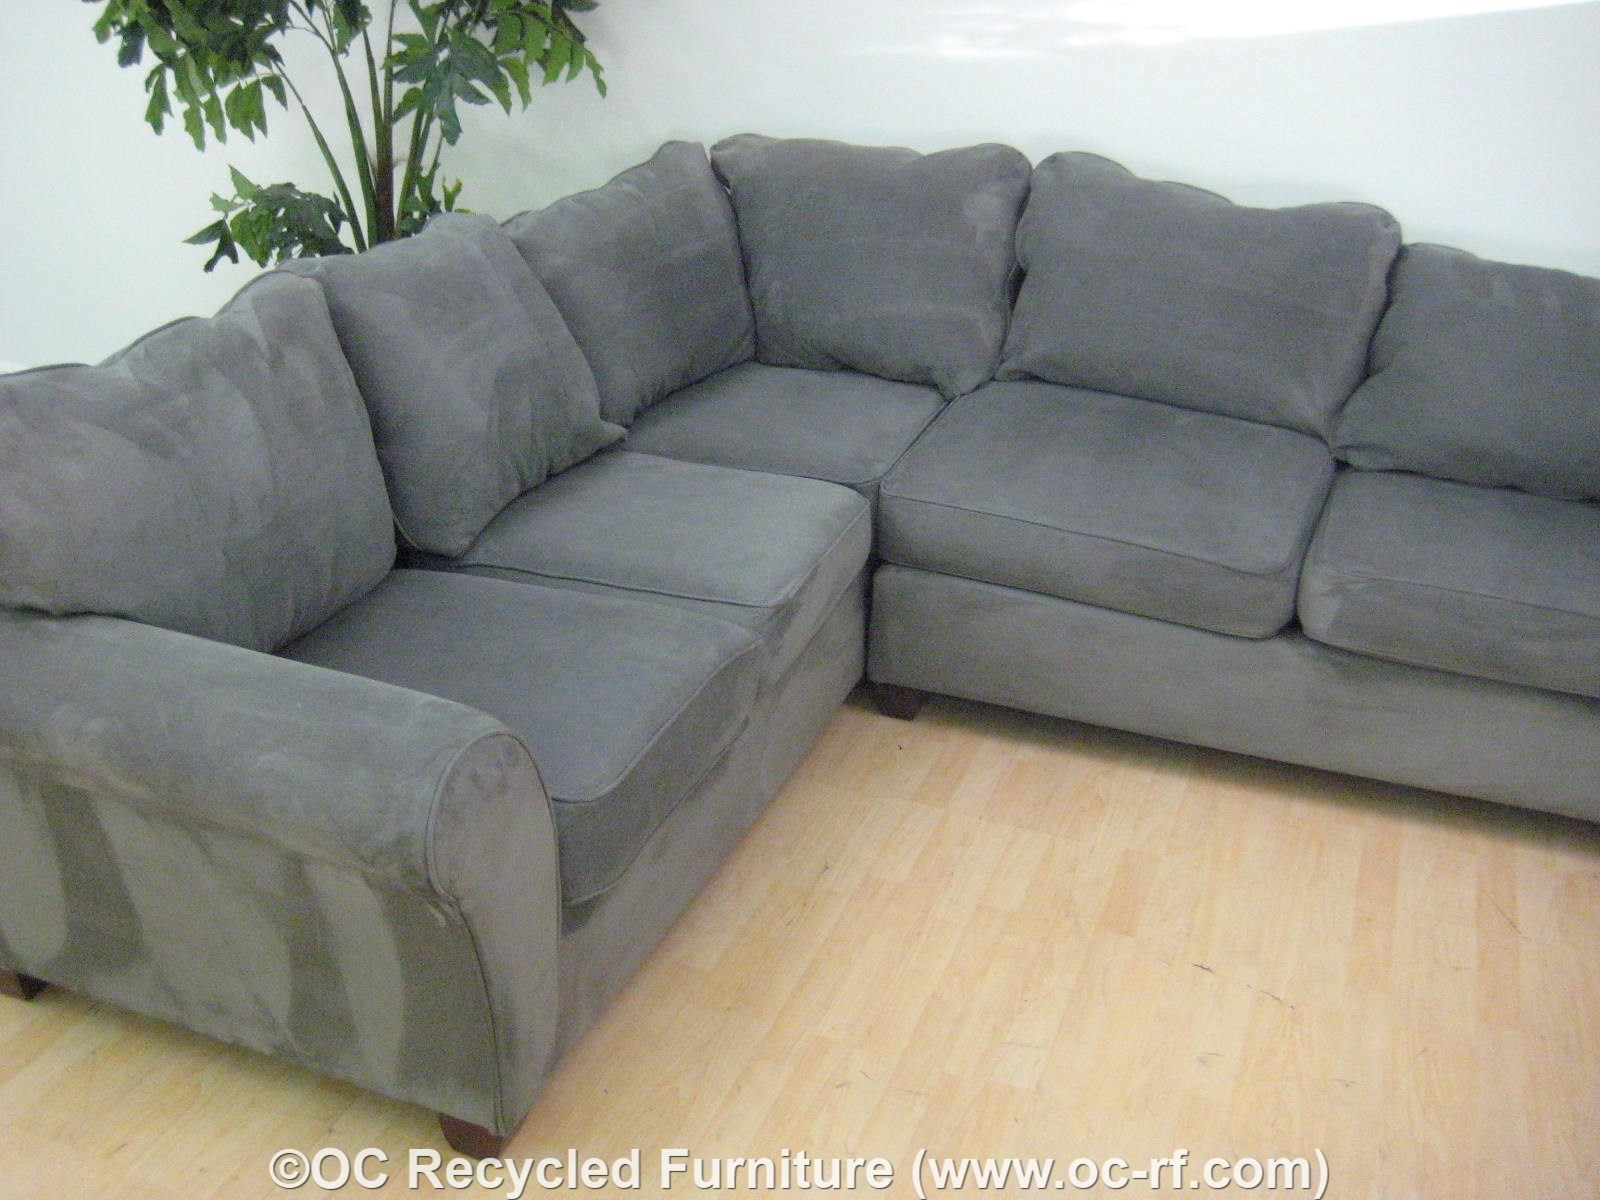 Excellent sectional couches for sale with cushions and wooden legs for home furniture ideas with cheap sectional couches for sale